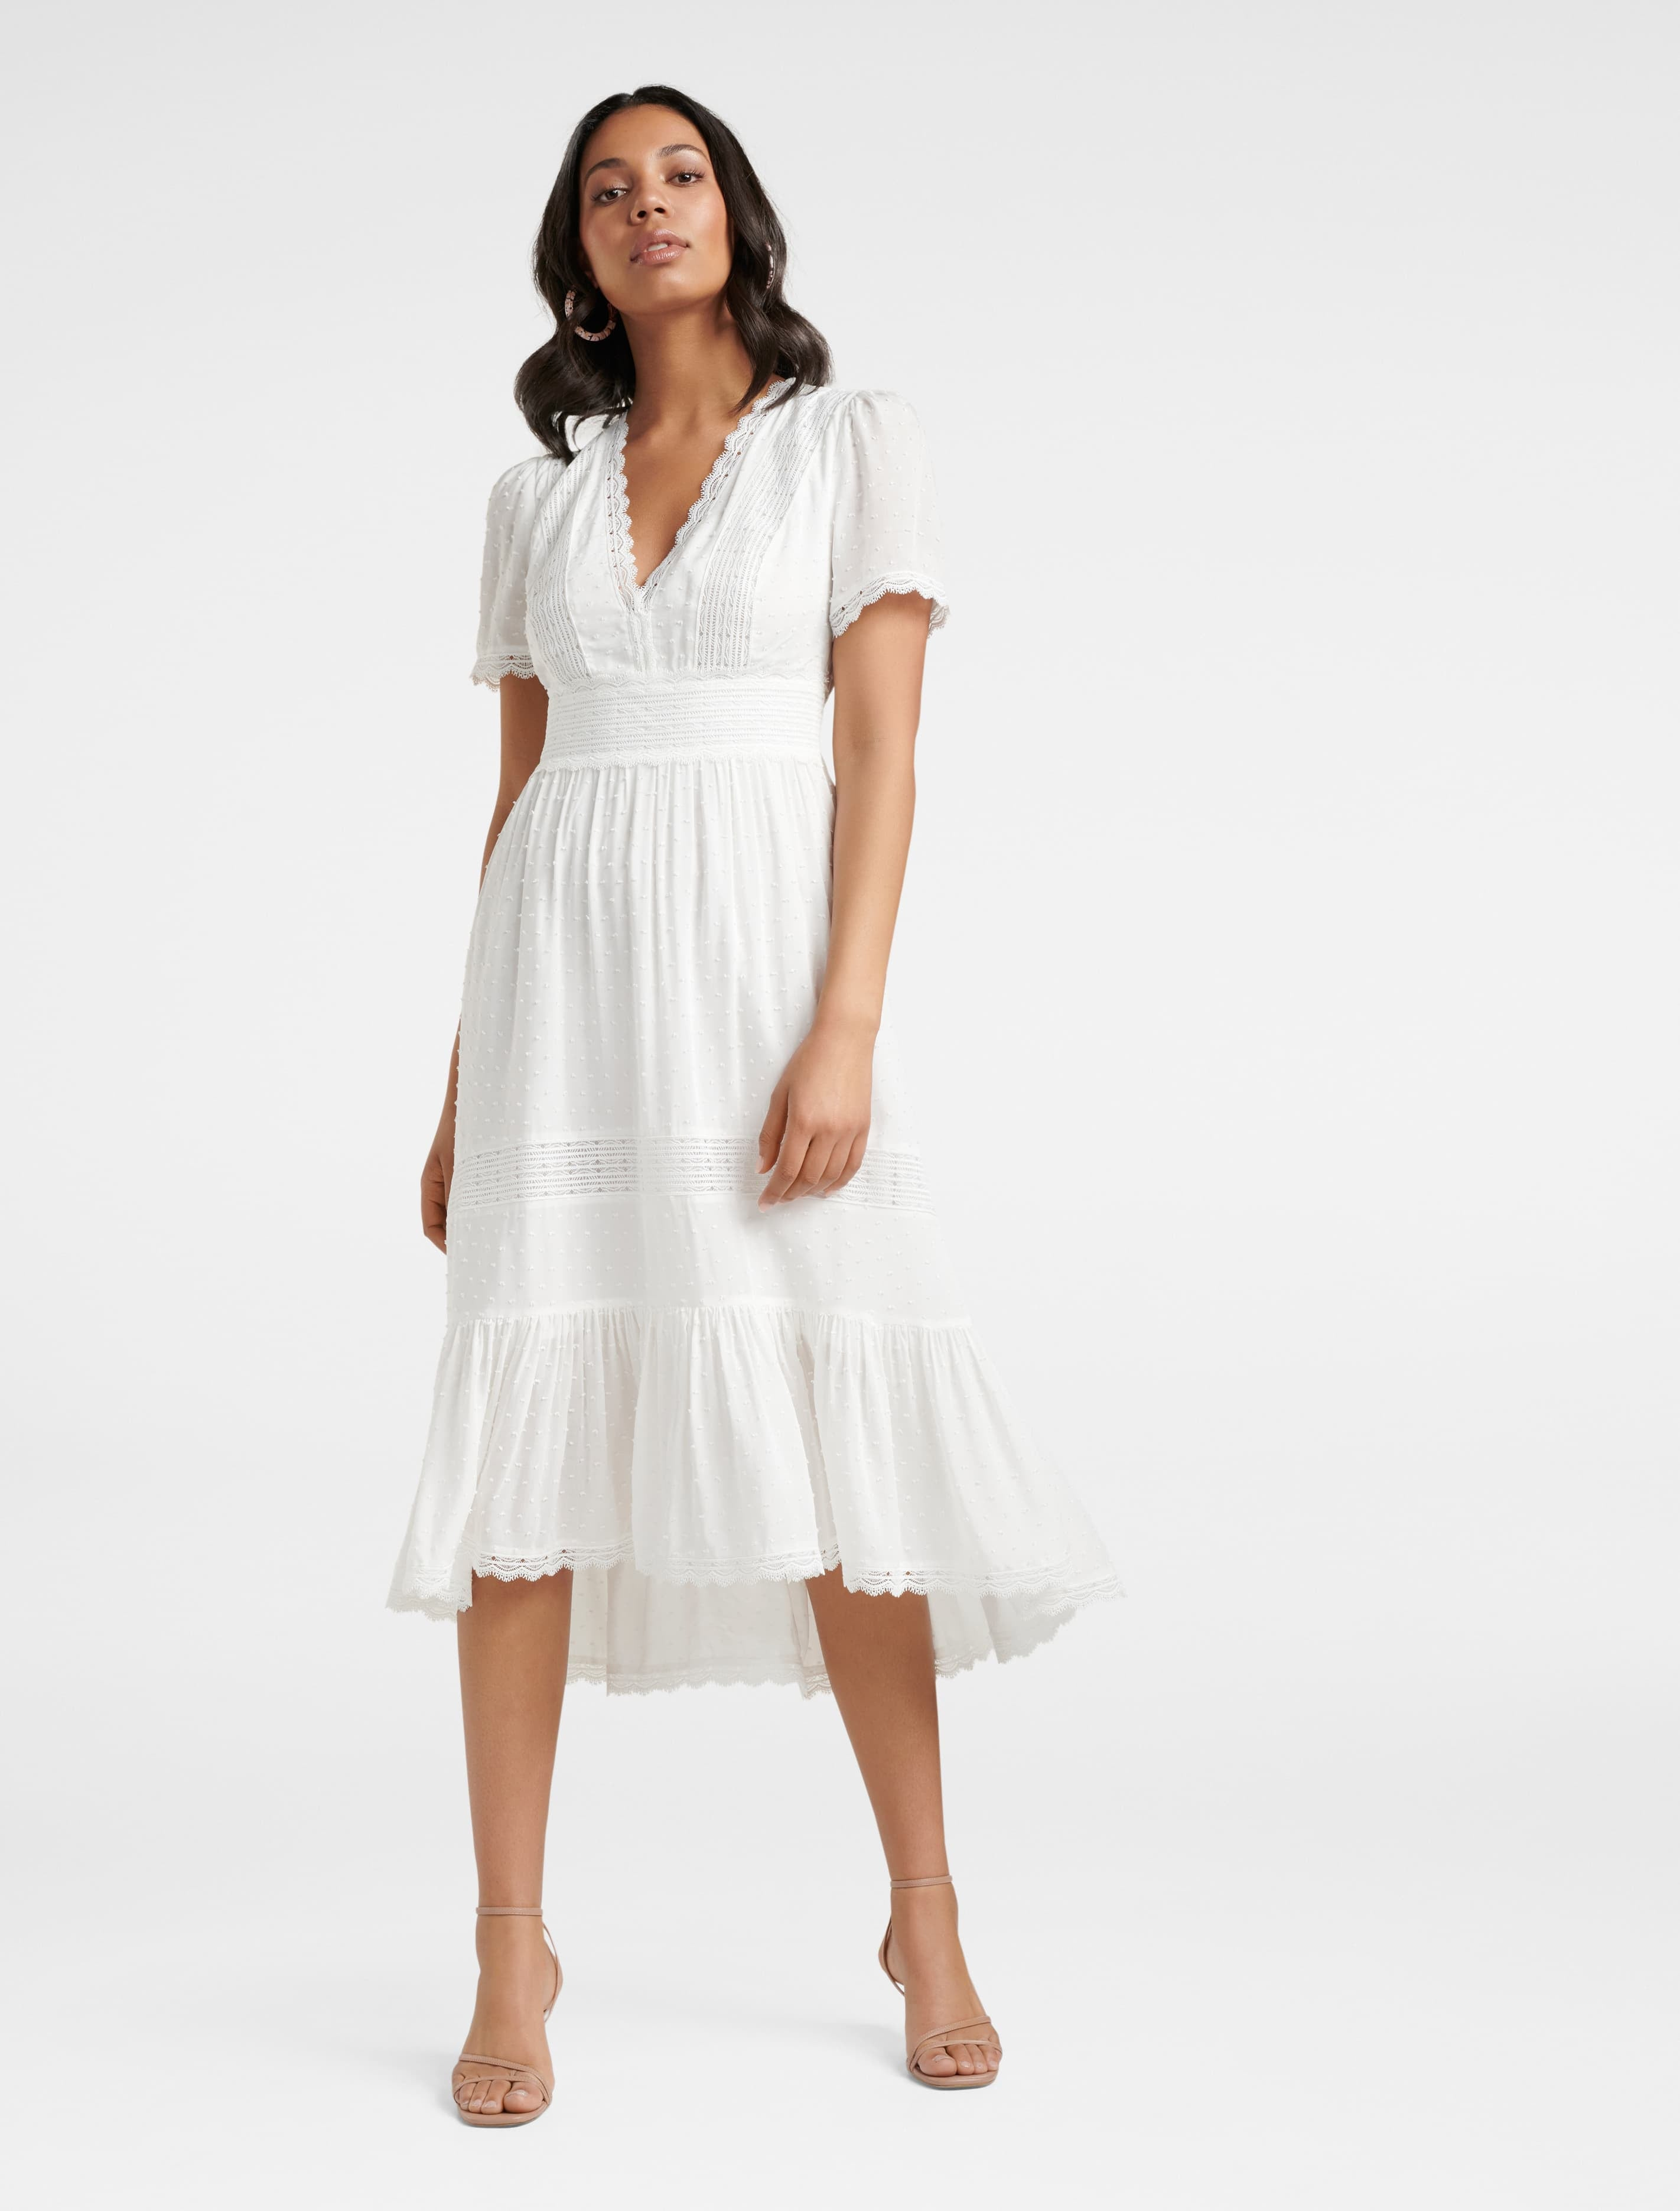 Swing Dance Clothing You Can Dance In Margot Spliced Midi Dress - White - 12 $135.99 AT vintagedancer.com